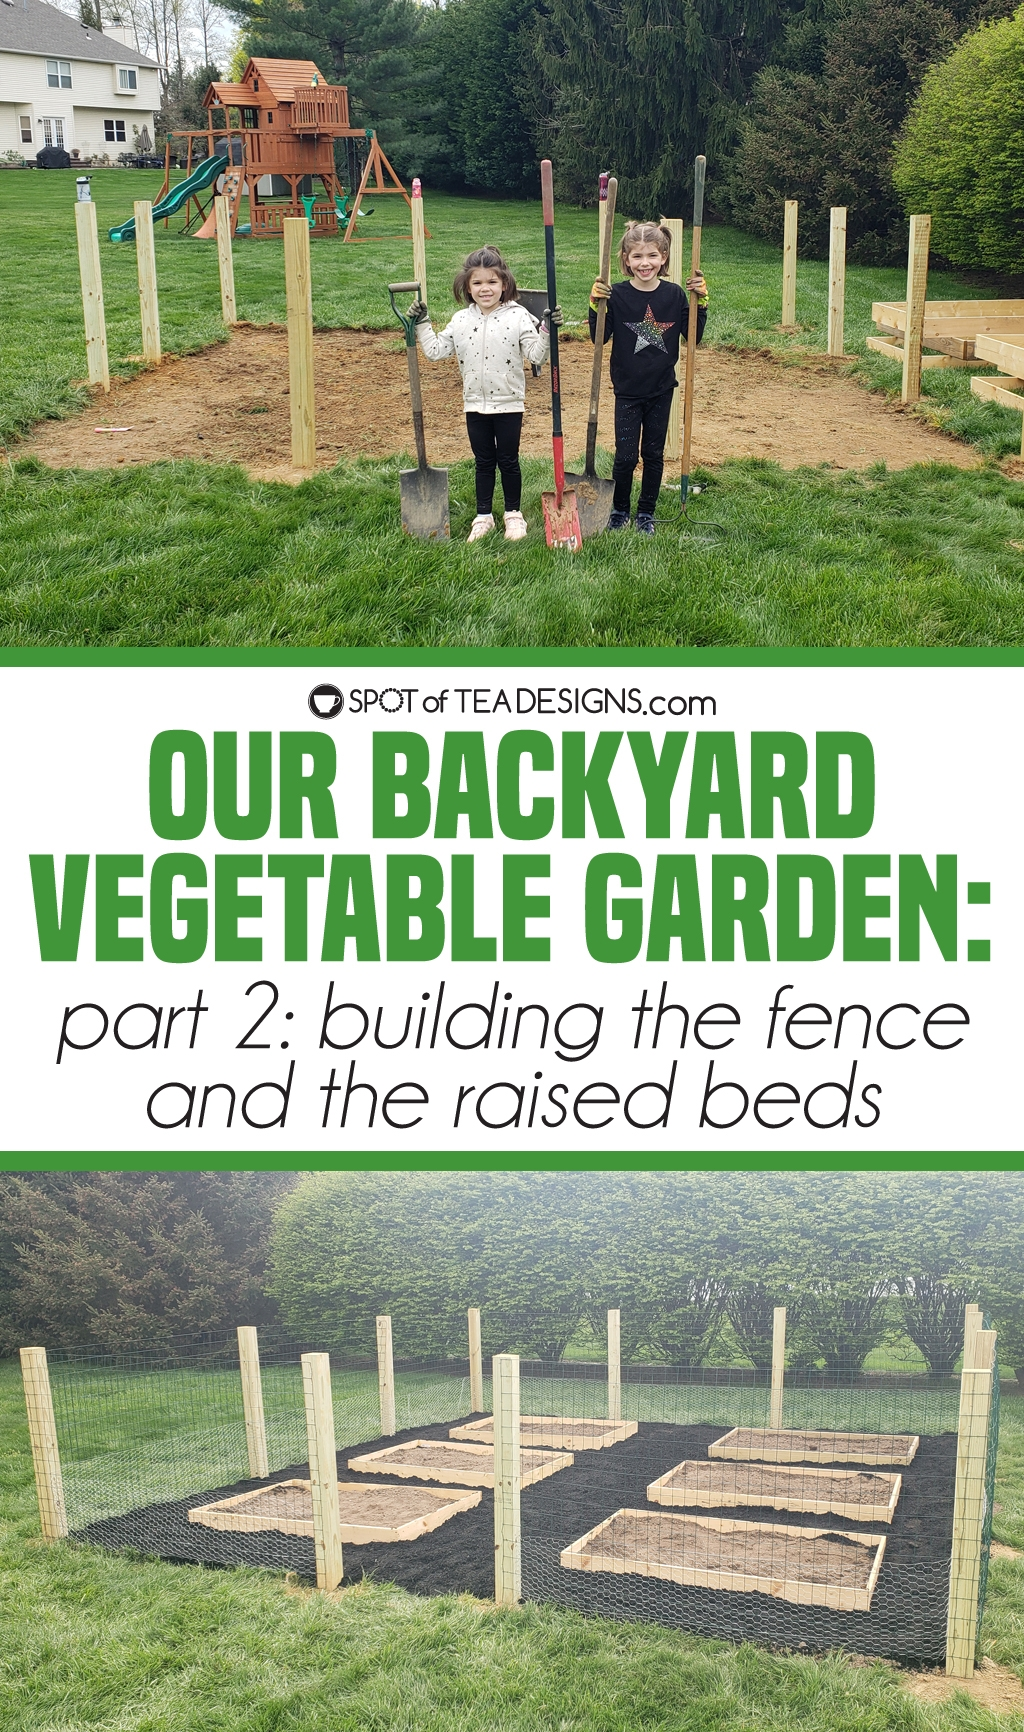 Our backyard vegetable garden - part 2: building the fence and the raised beds | spotofteadesigns.com